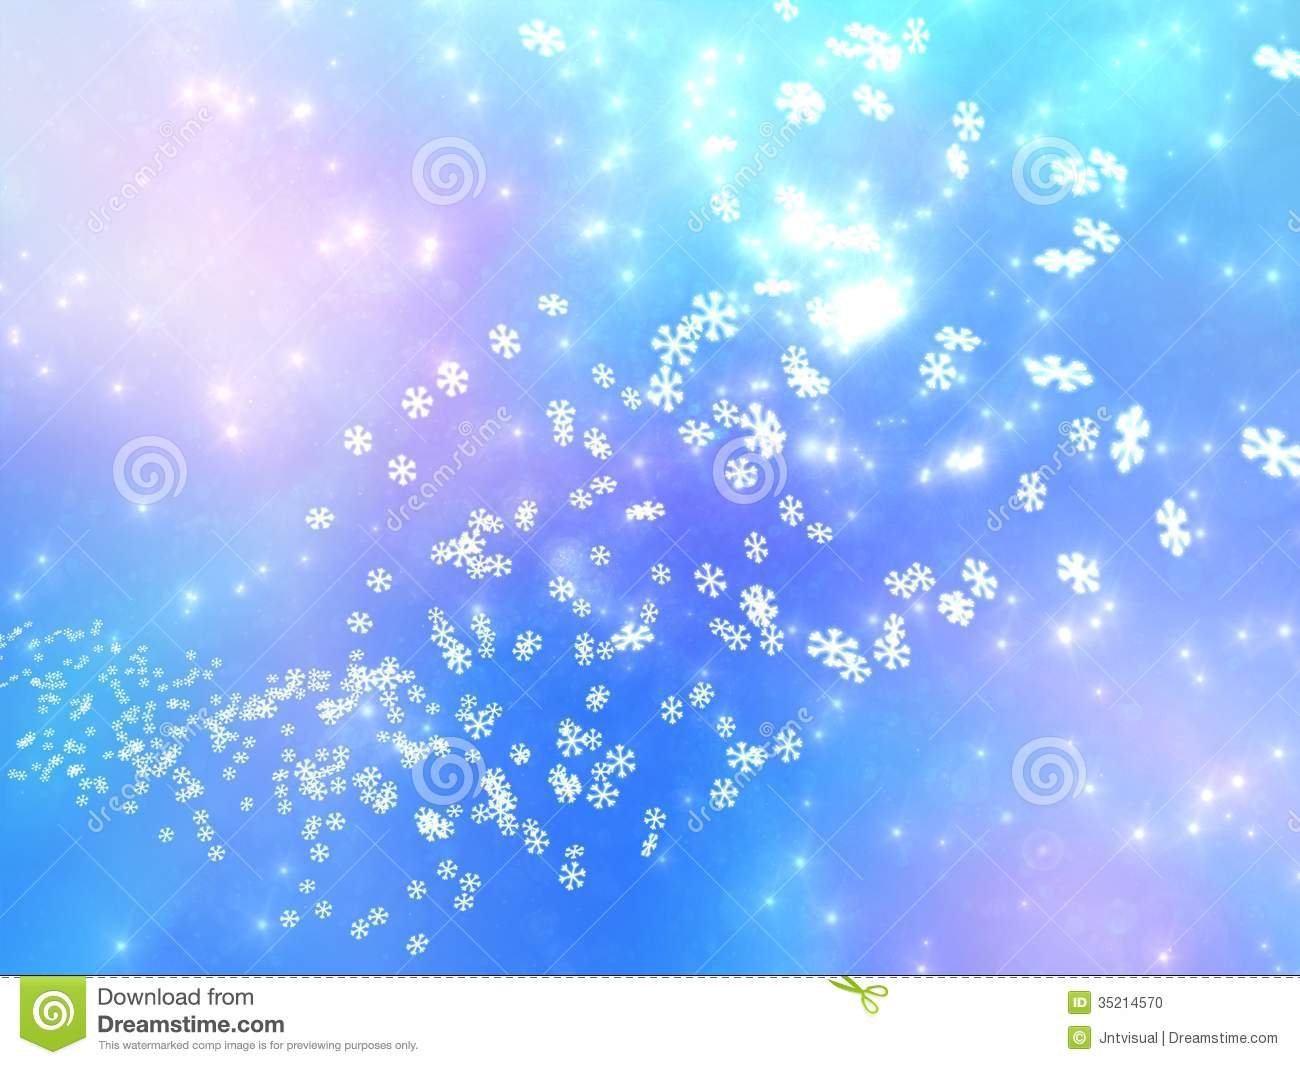 Real Snowflakes Falling Wallpaper Falling Snowflakes On A Pink And Blue Background Stock